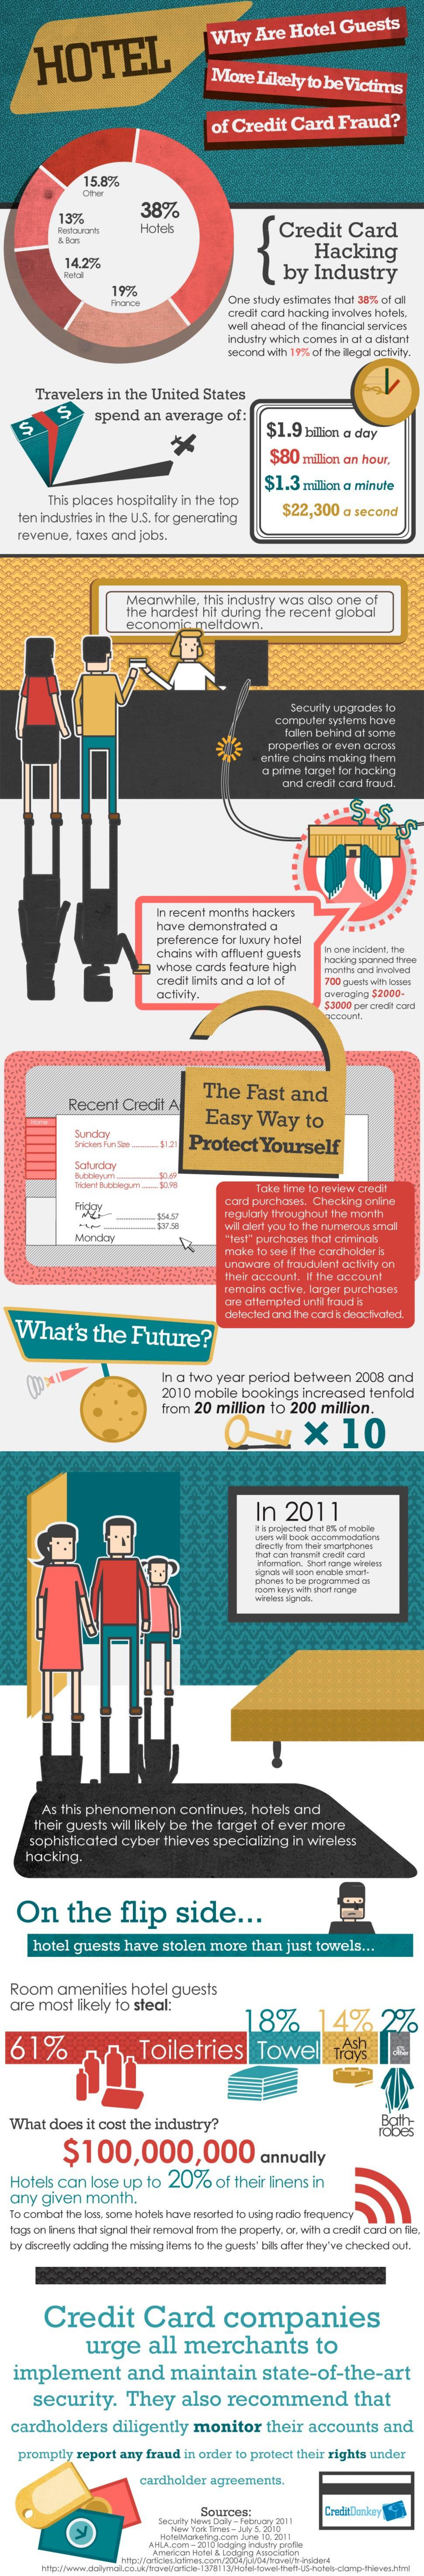 Hotel Credit Card Hacking Infographic